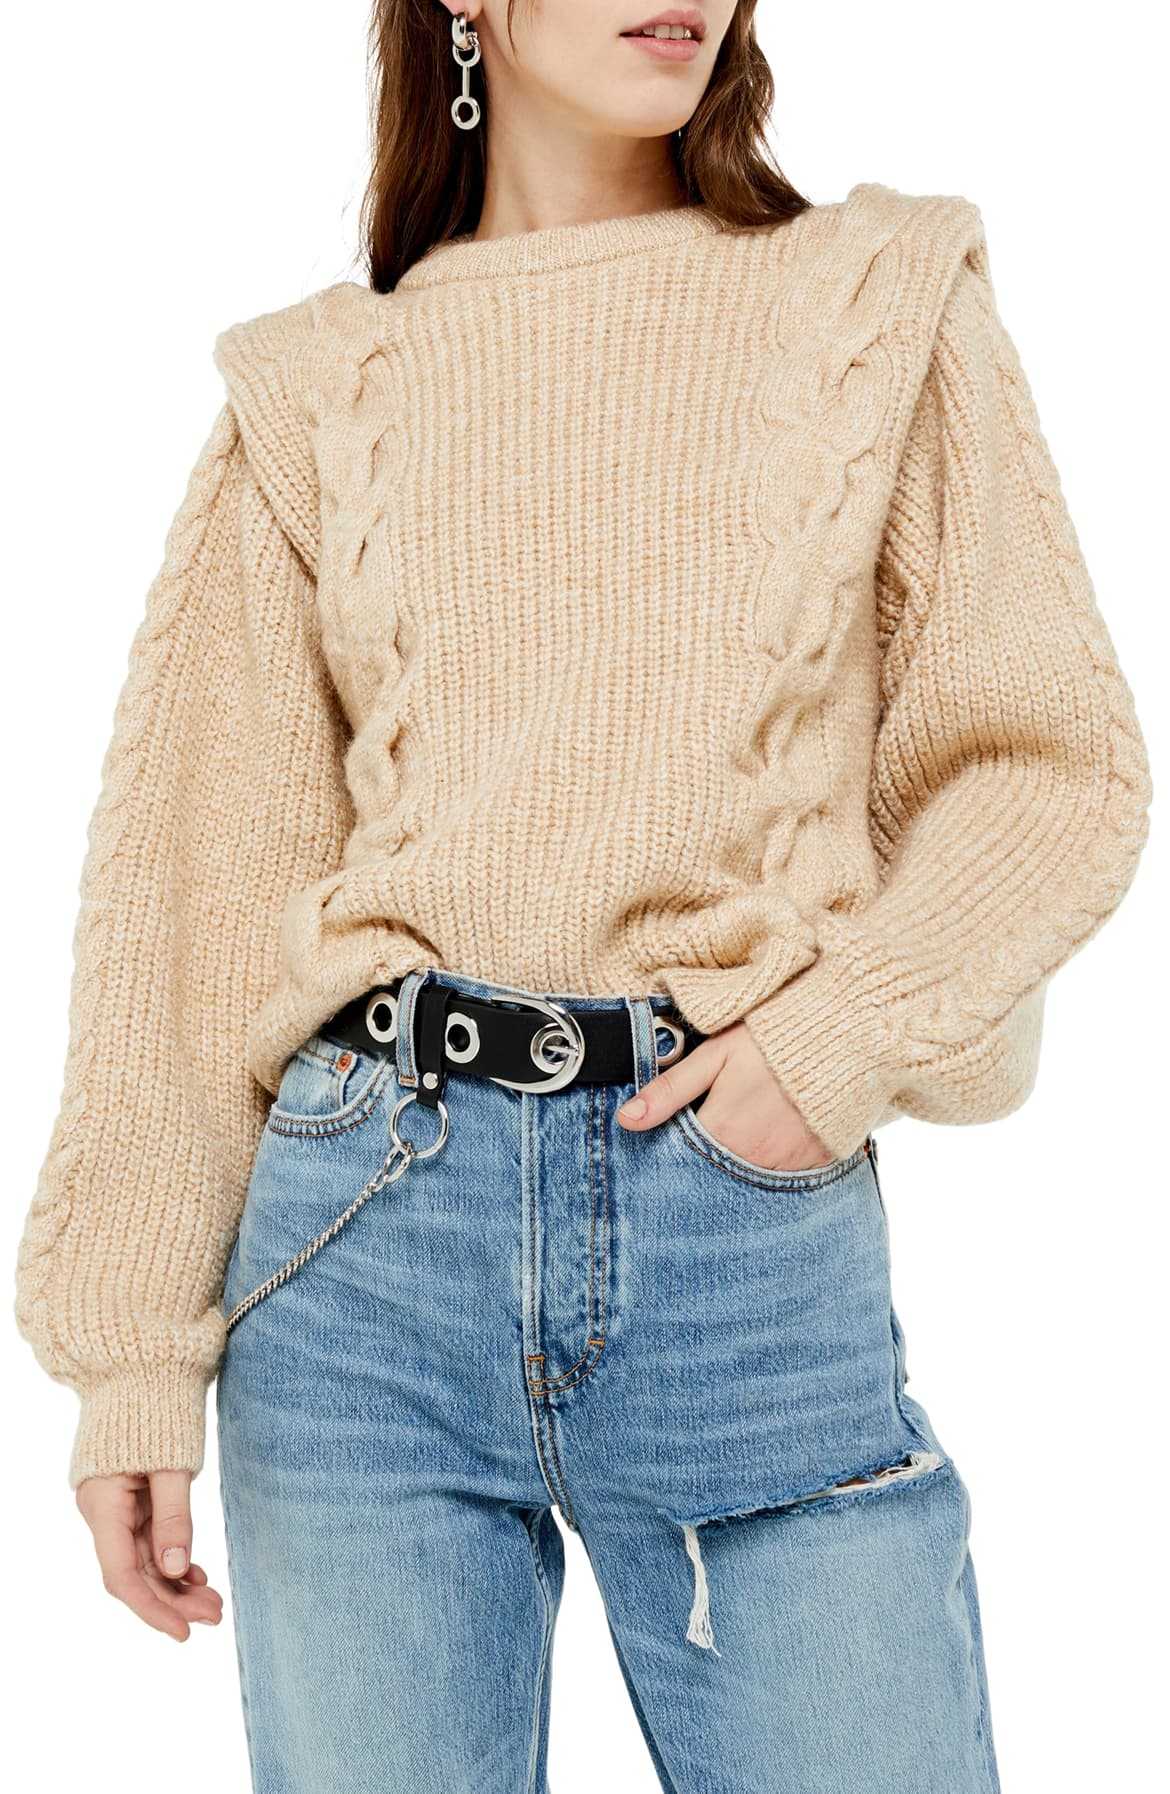 Sharp edges, puff sleeves and exaggerated designs were a total hit in the '80s. This $85, chunky cable knit is the perfect in between option. (Image: Nordstrom){ }